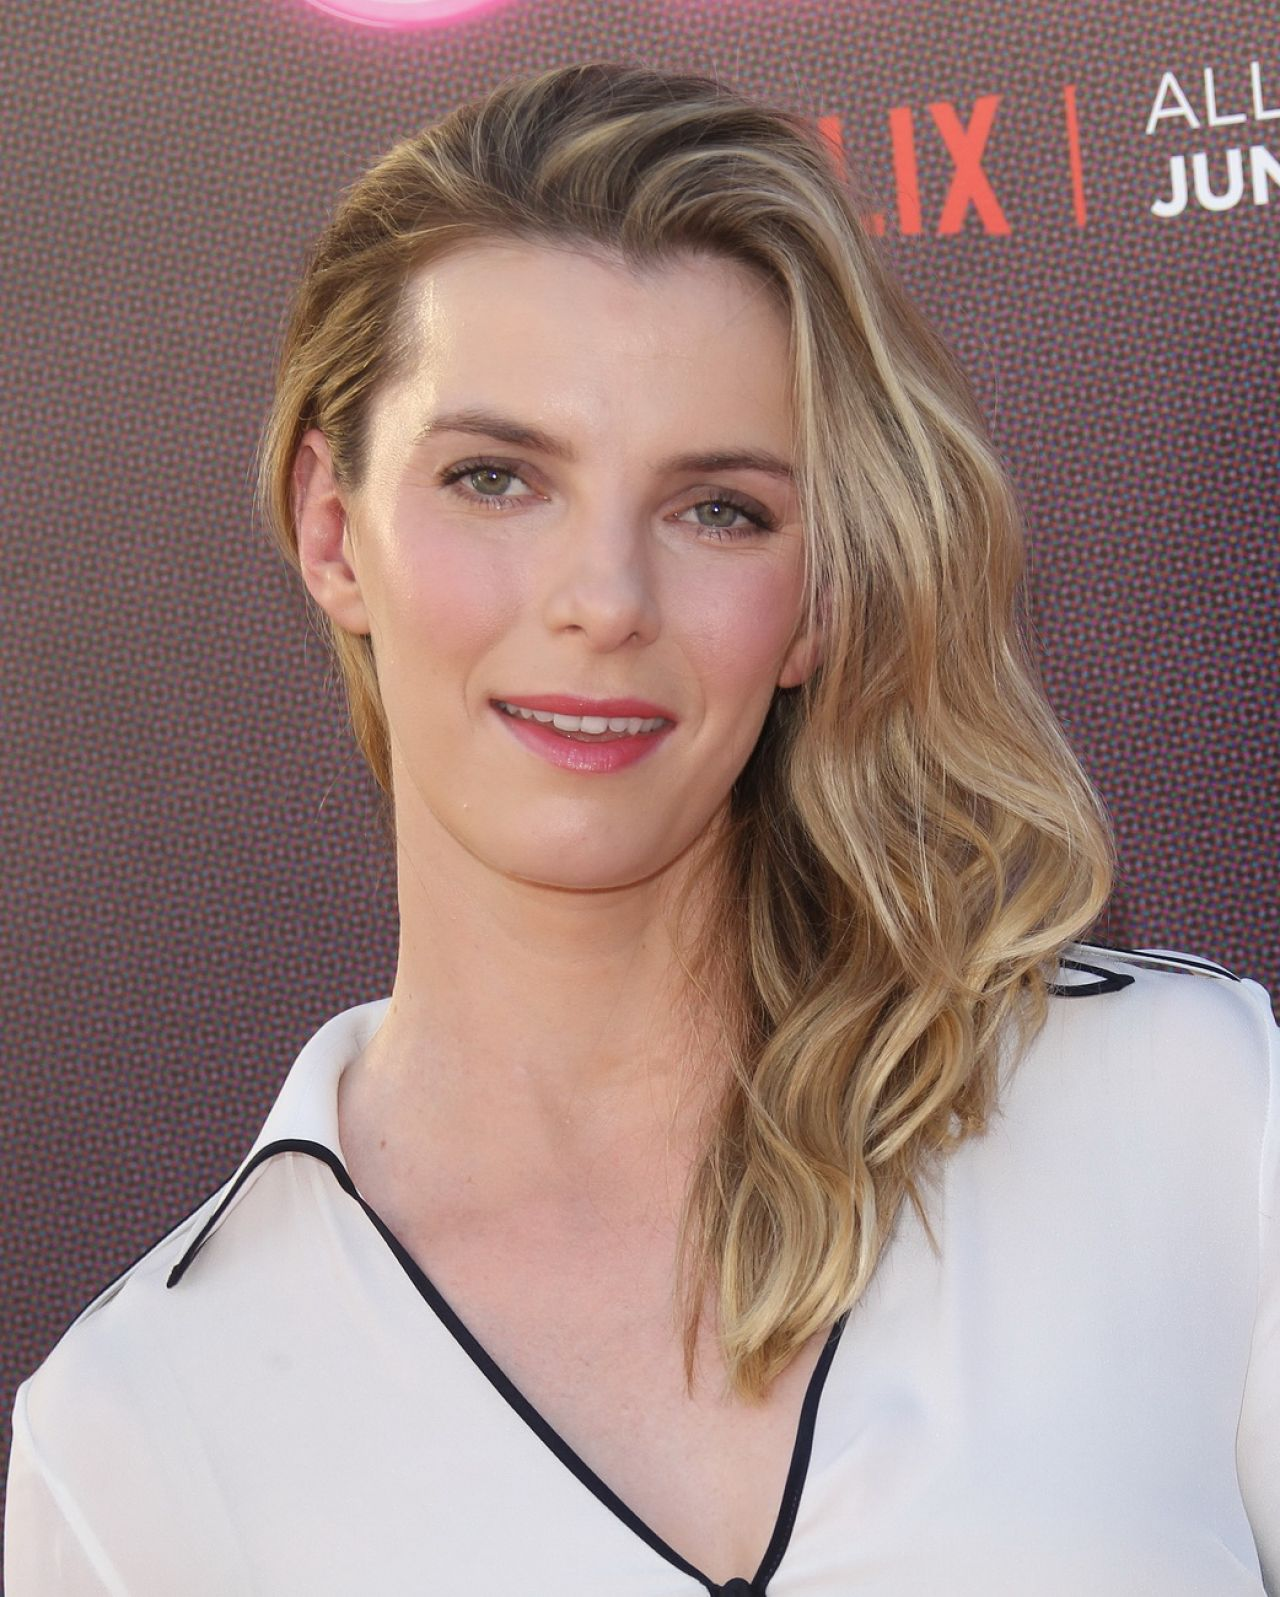 Betty Gilpin Glow Tv Show Premiere In Los Angeles 06 21 2017